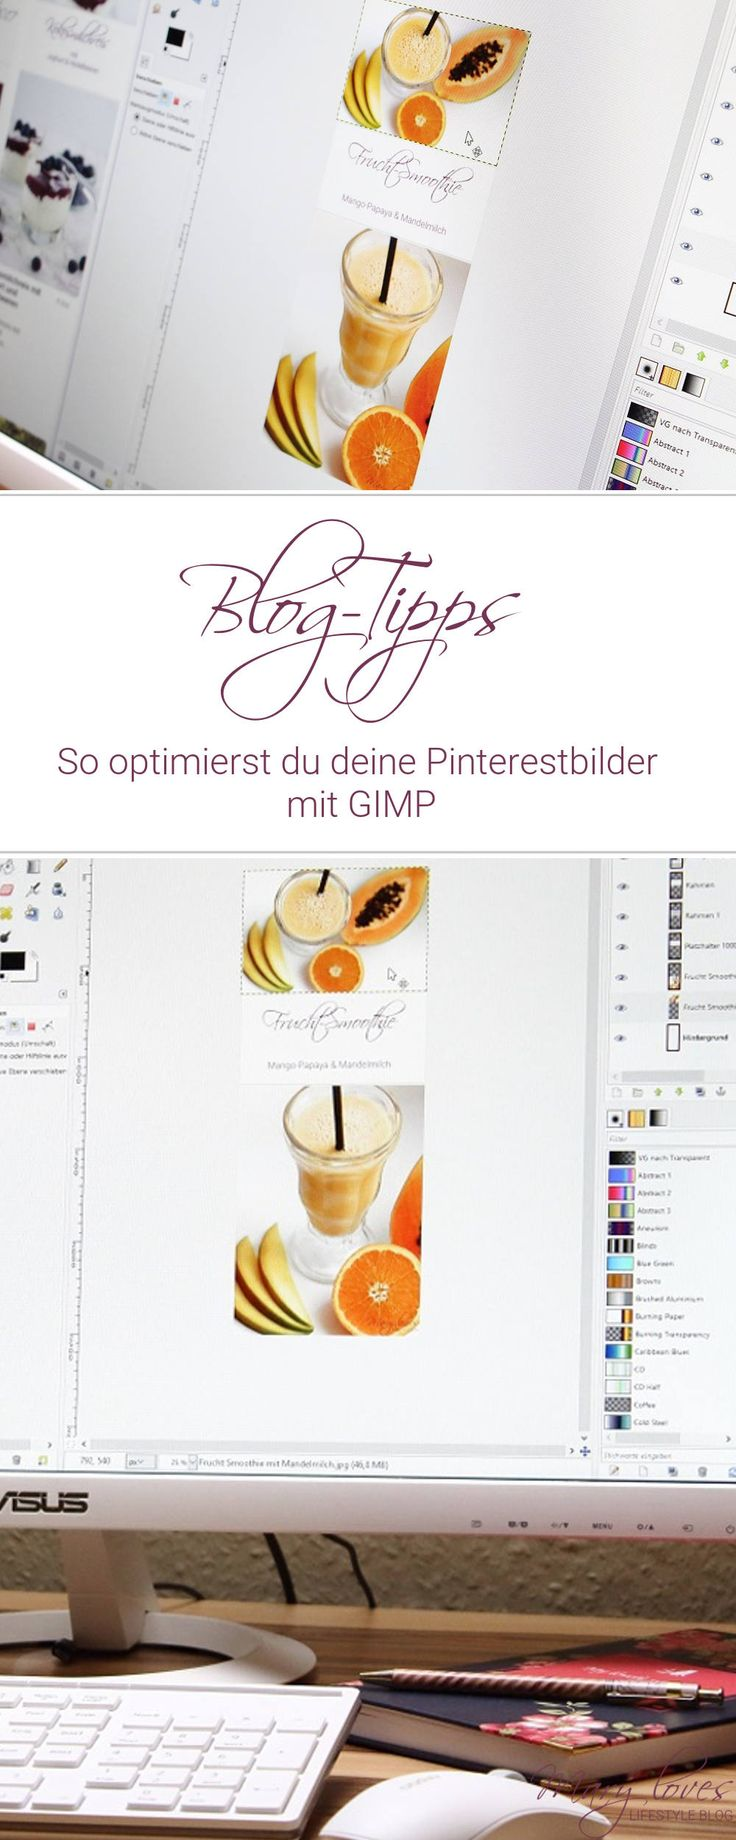 Pinterest - Pinterestbilder optimieren mit GIMP - Tutorial - Blog-Tipps - Blogging - Anleitung If you want to enjoy the Good Life: making money in the comfort of your own home with your photography, then this is for YOU … http://photographyjobs-net.blogspot.com?prod=RsJpBkig